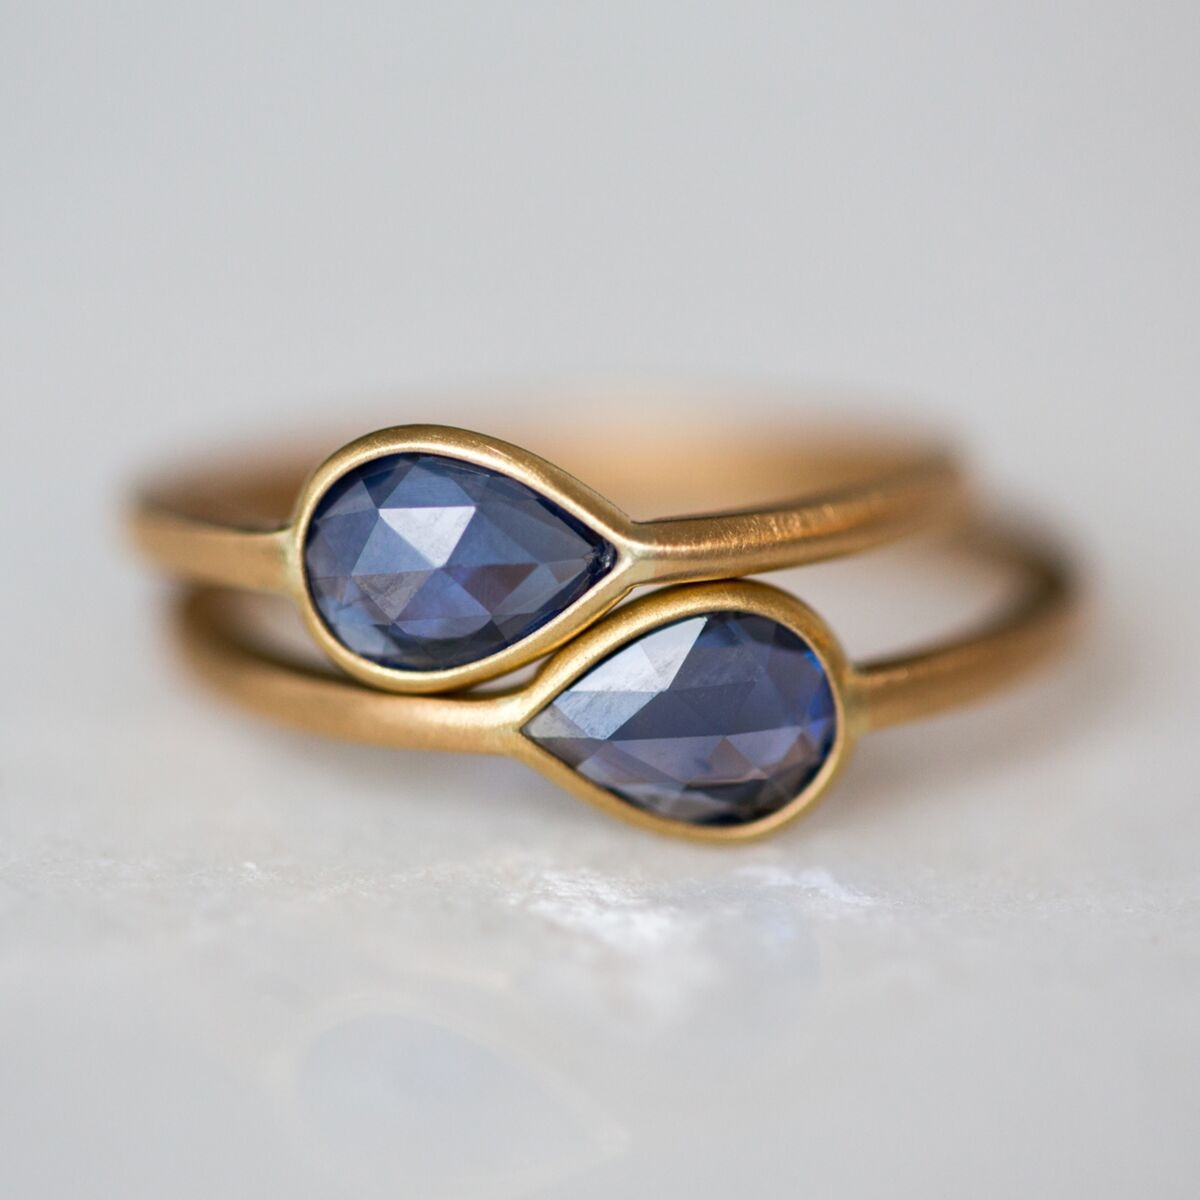 pear shaped blue solitaire sapphire engagement rings